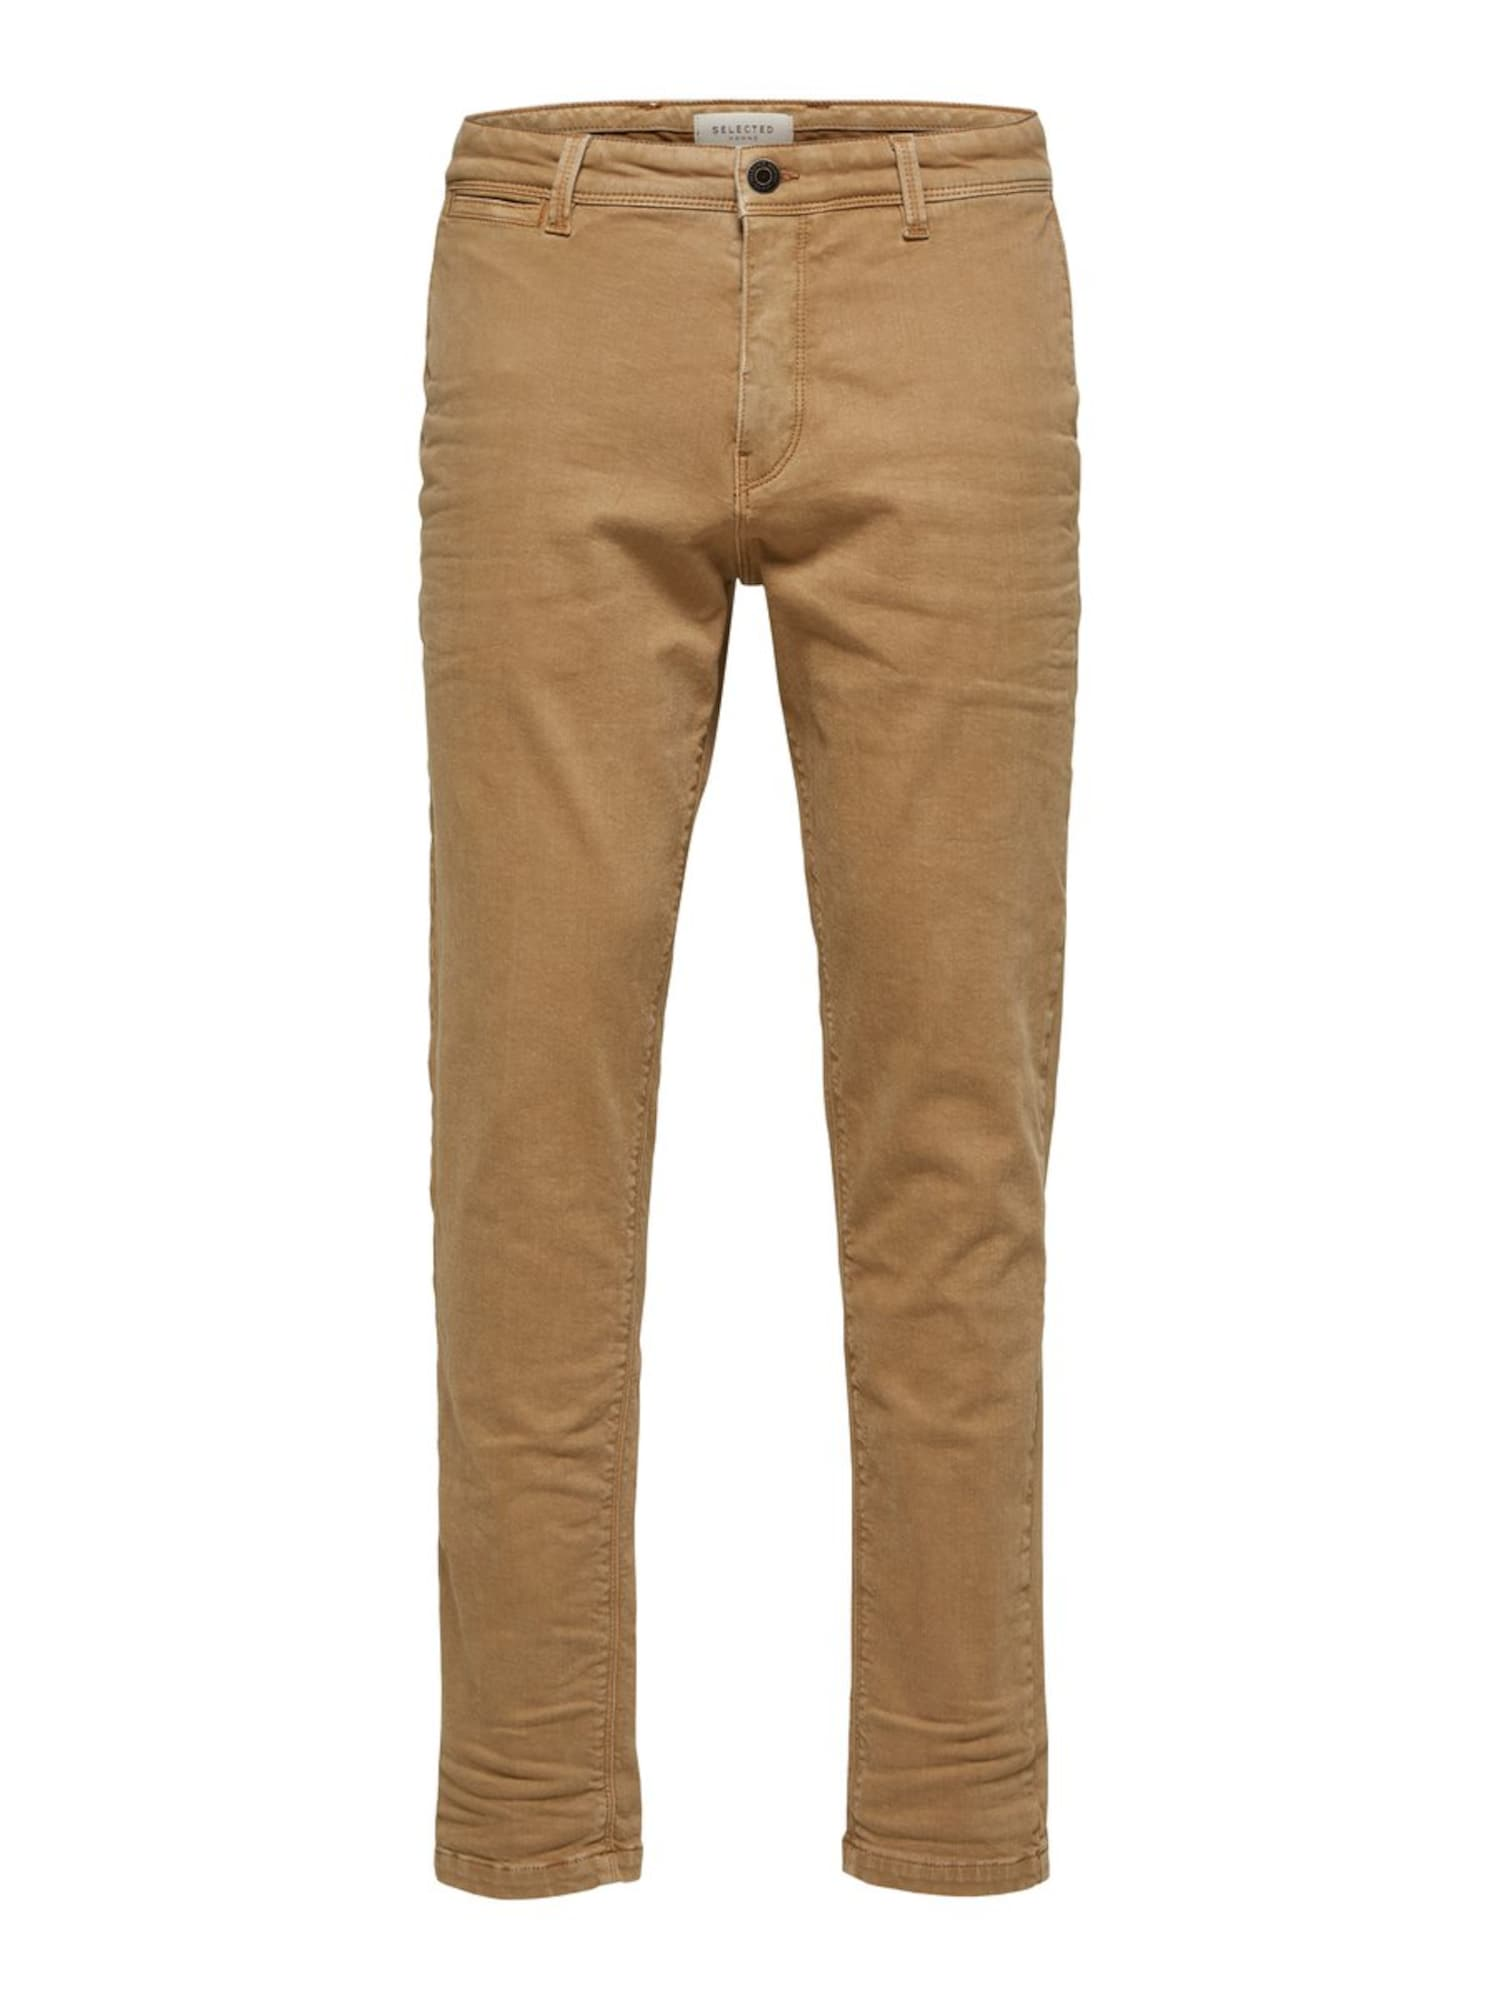 SELECTED HOMME Chino nohavice  žltohnedý